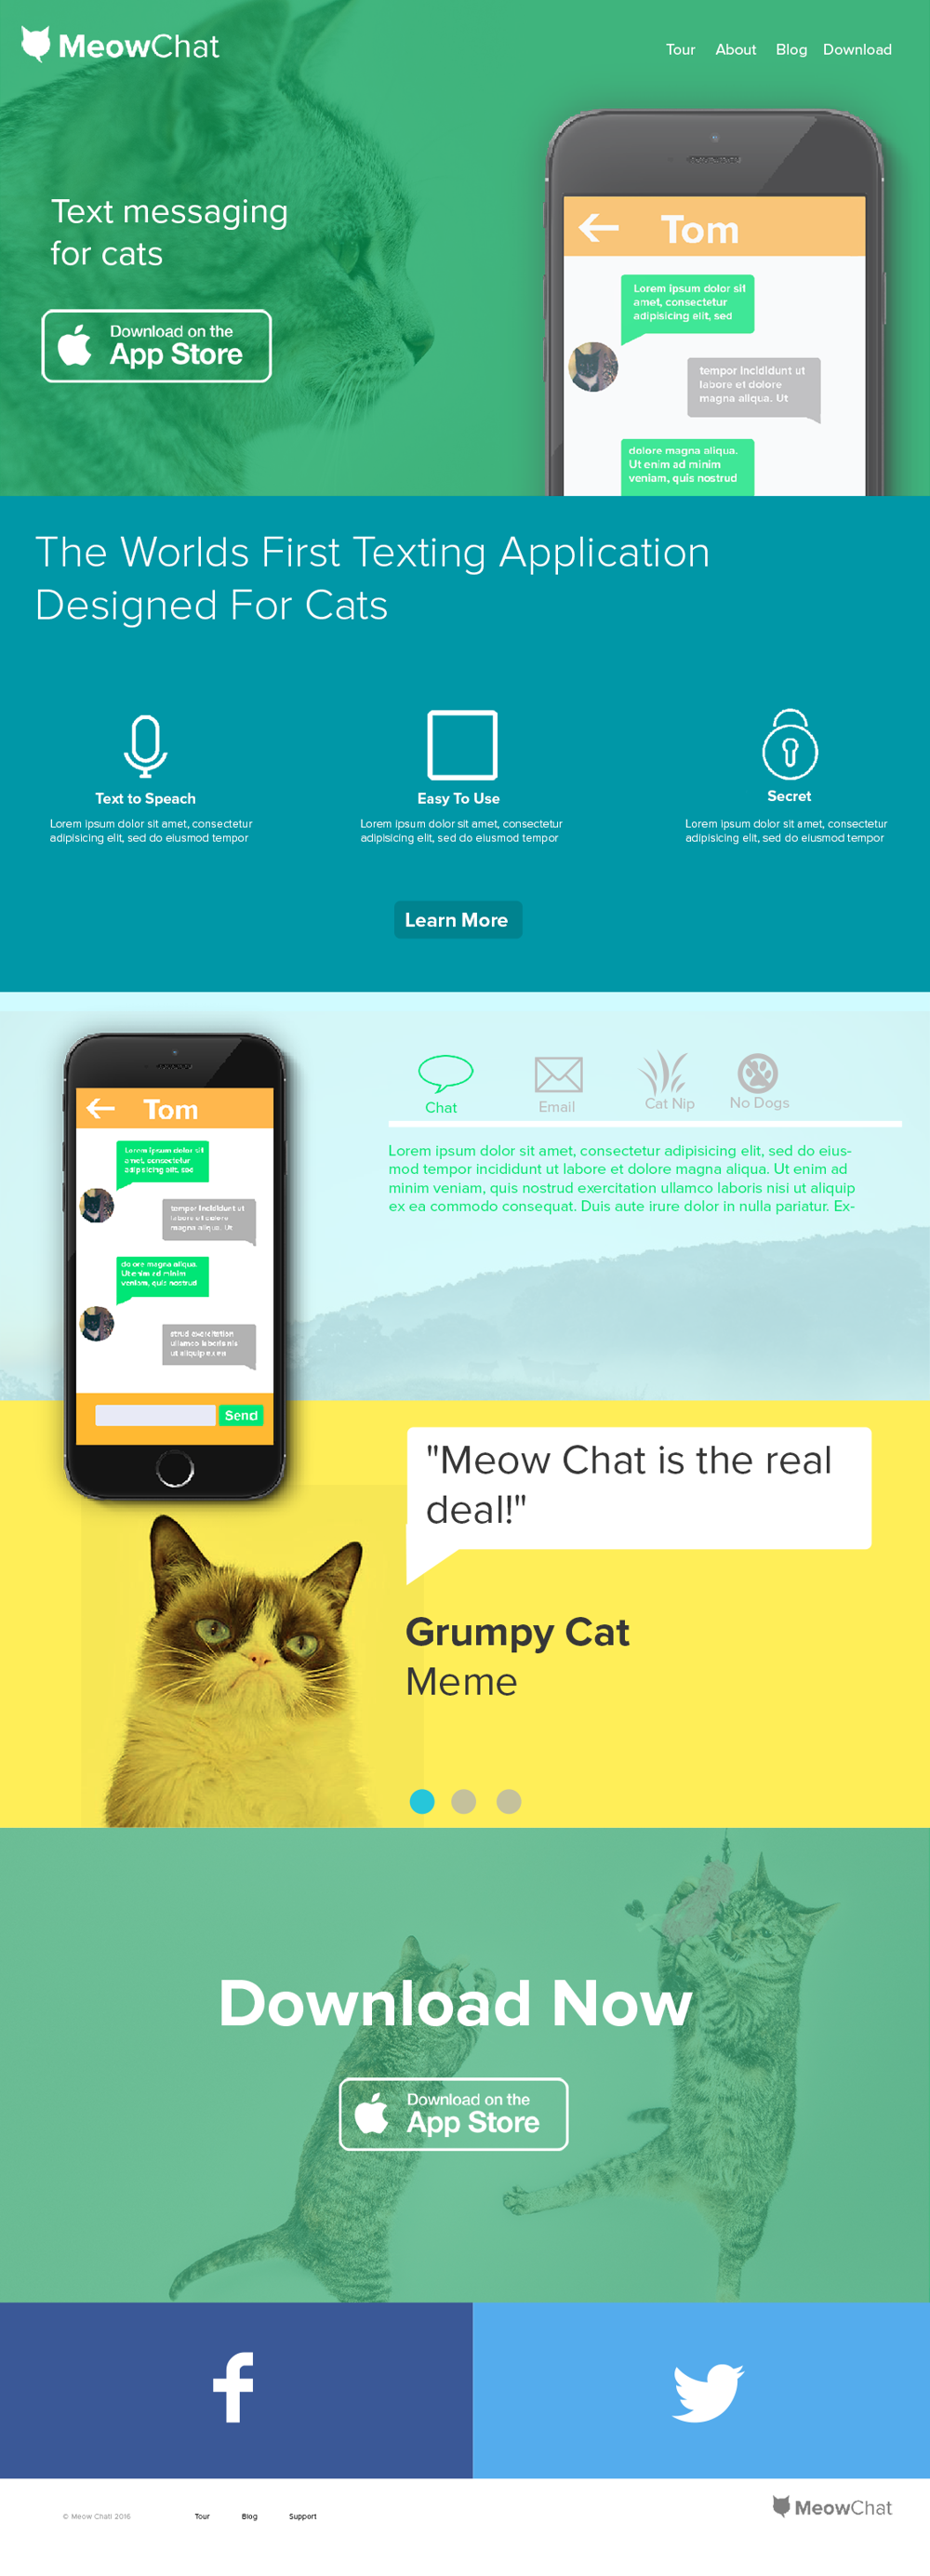 Meow Chat - image 1 - student project